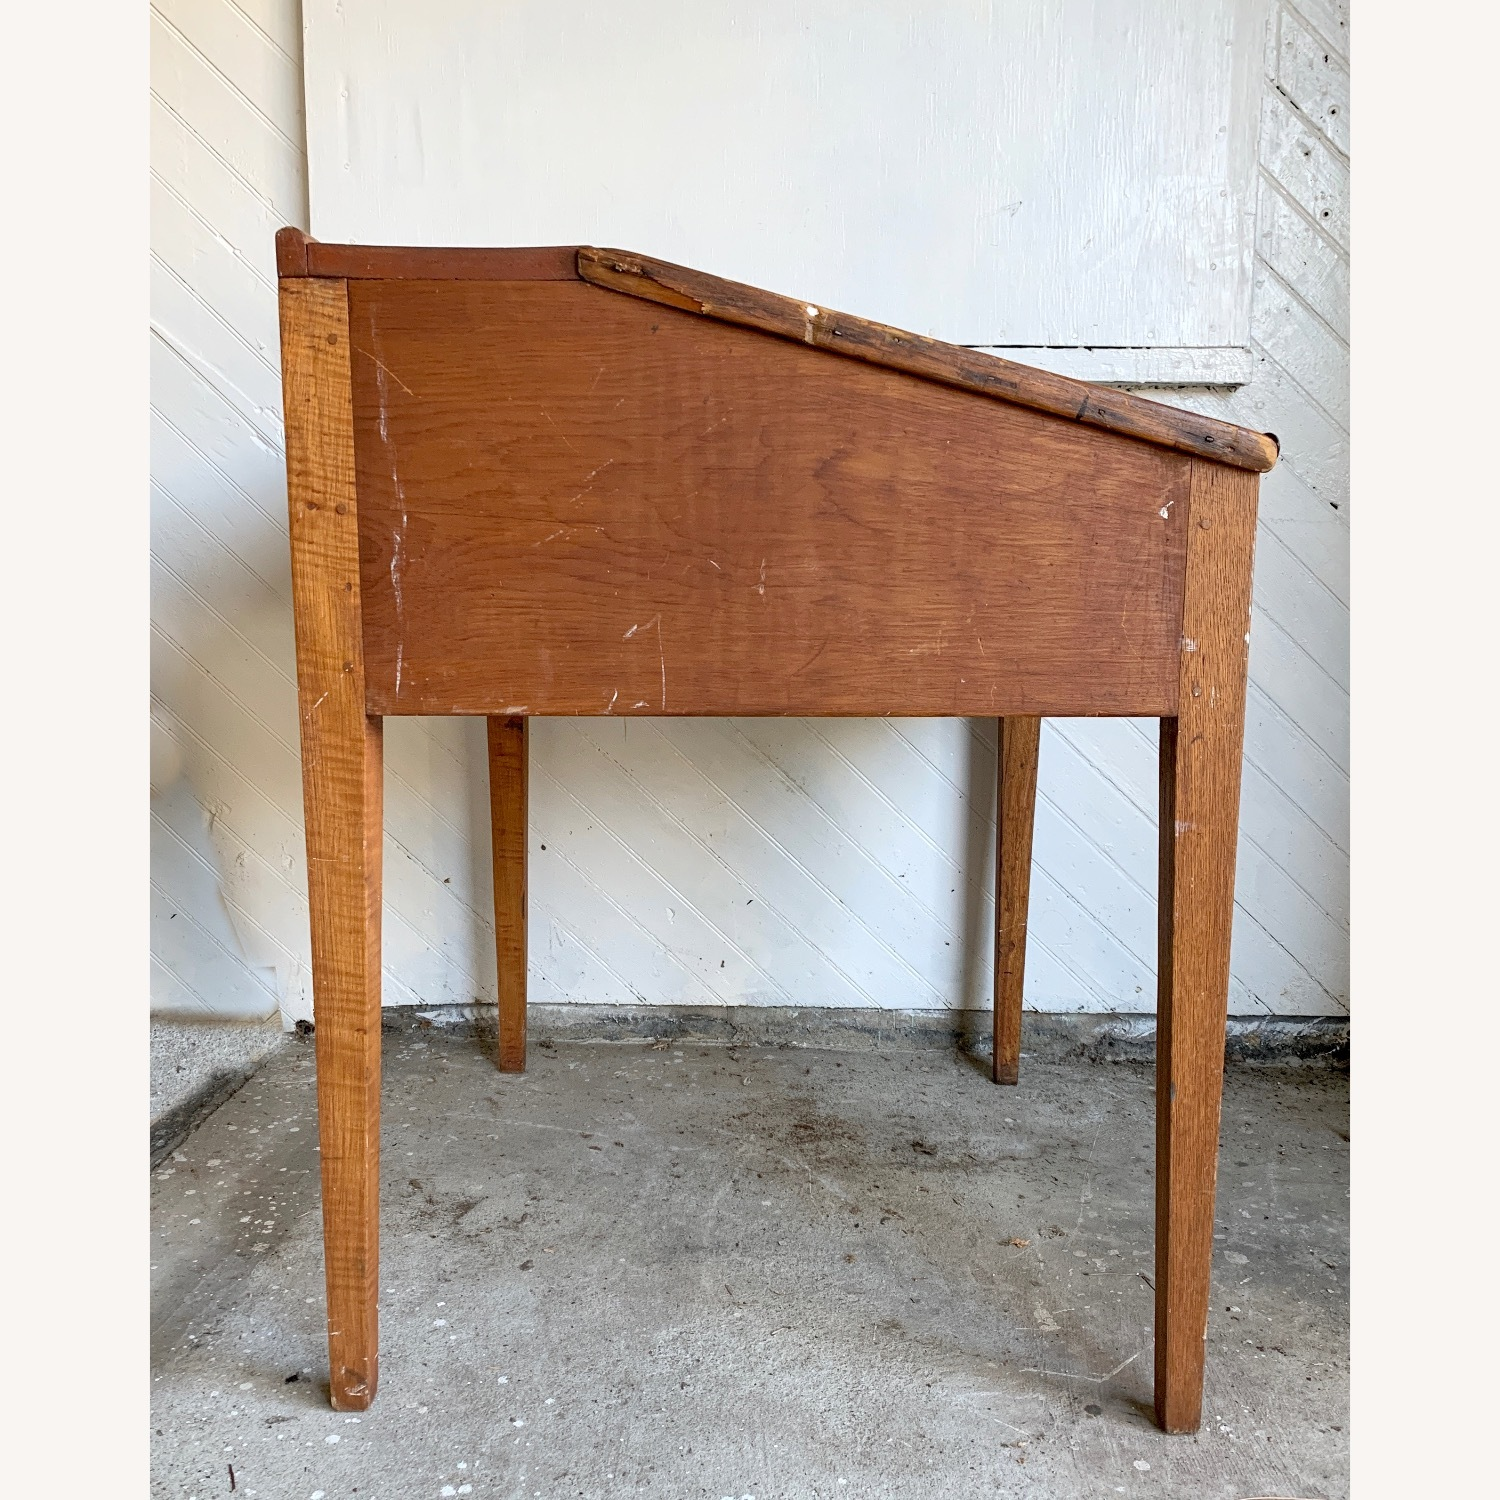 Antique Wooden Slant-top Desk with Storage - image-1